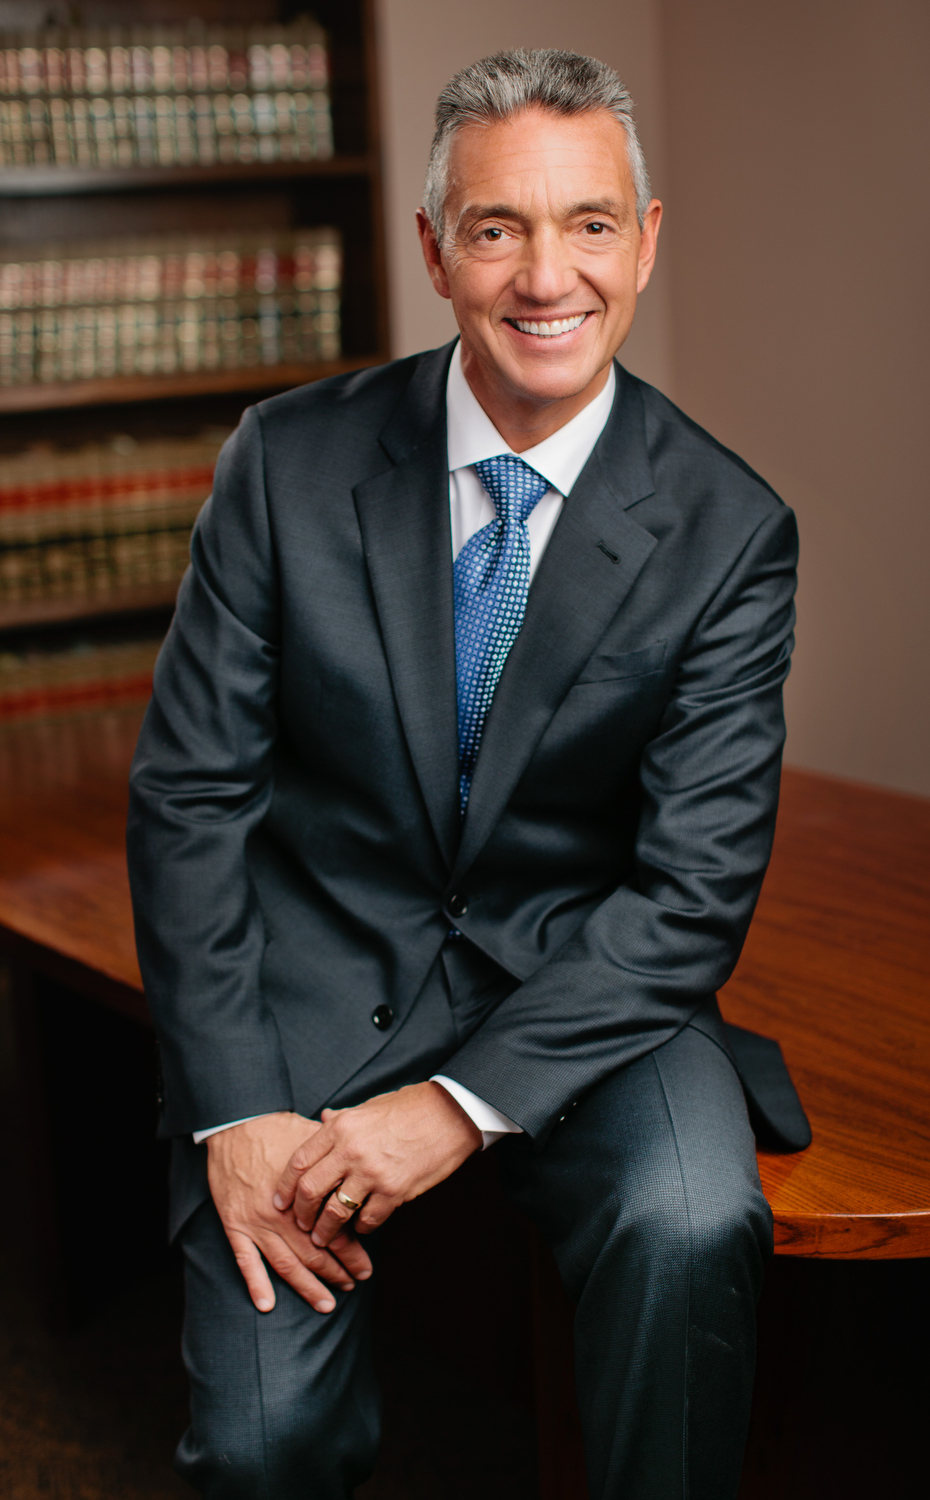 Attorney Portrait in Board Room